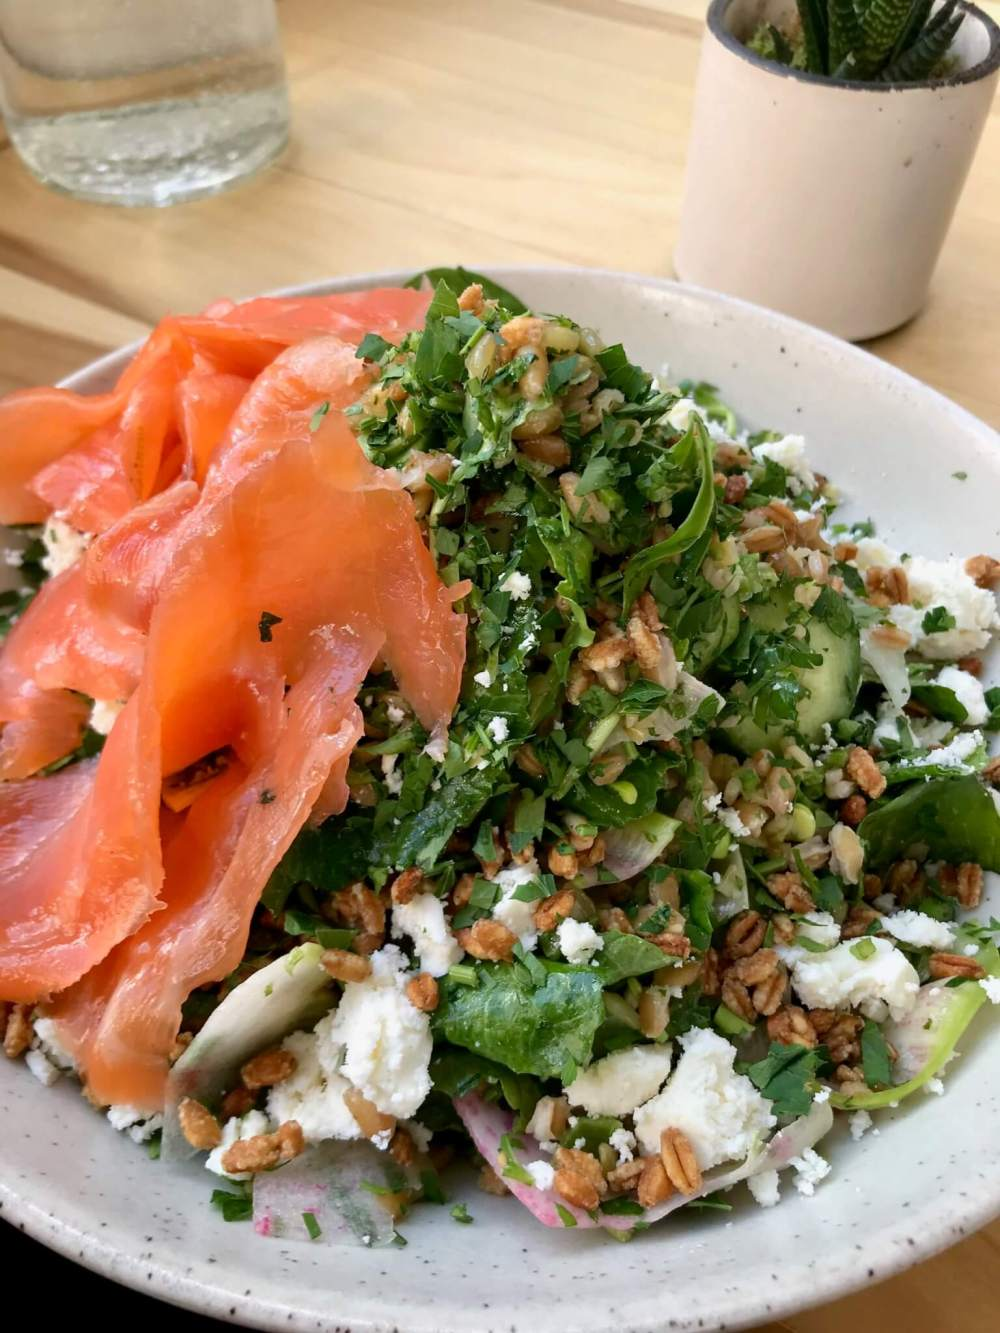 For a unique protein and flavor addition to a kale salad, try adding smoked salmon.